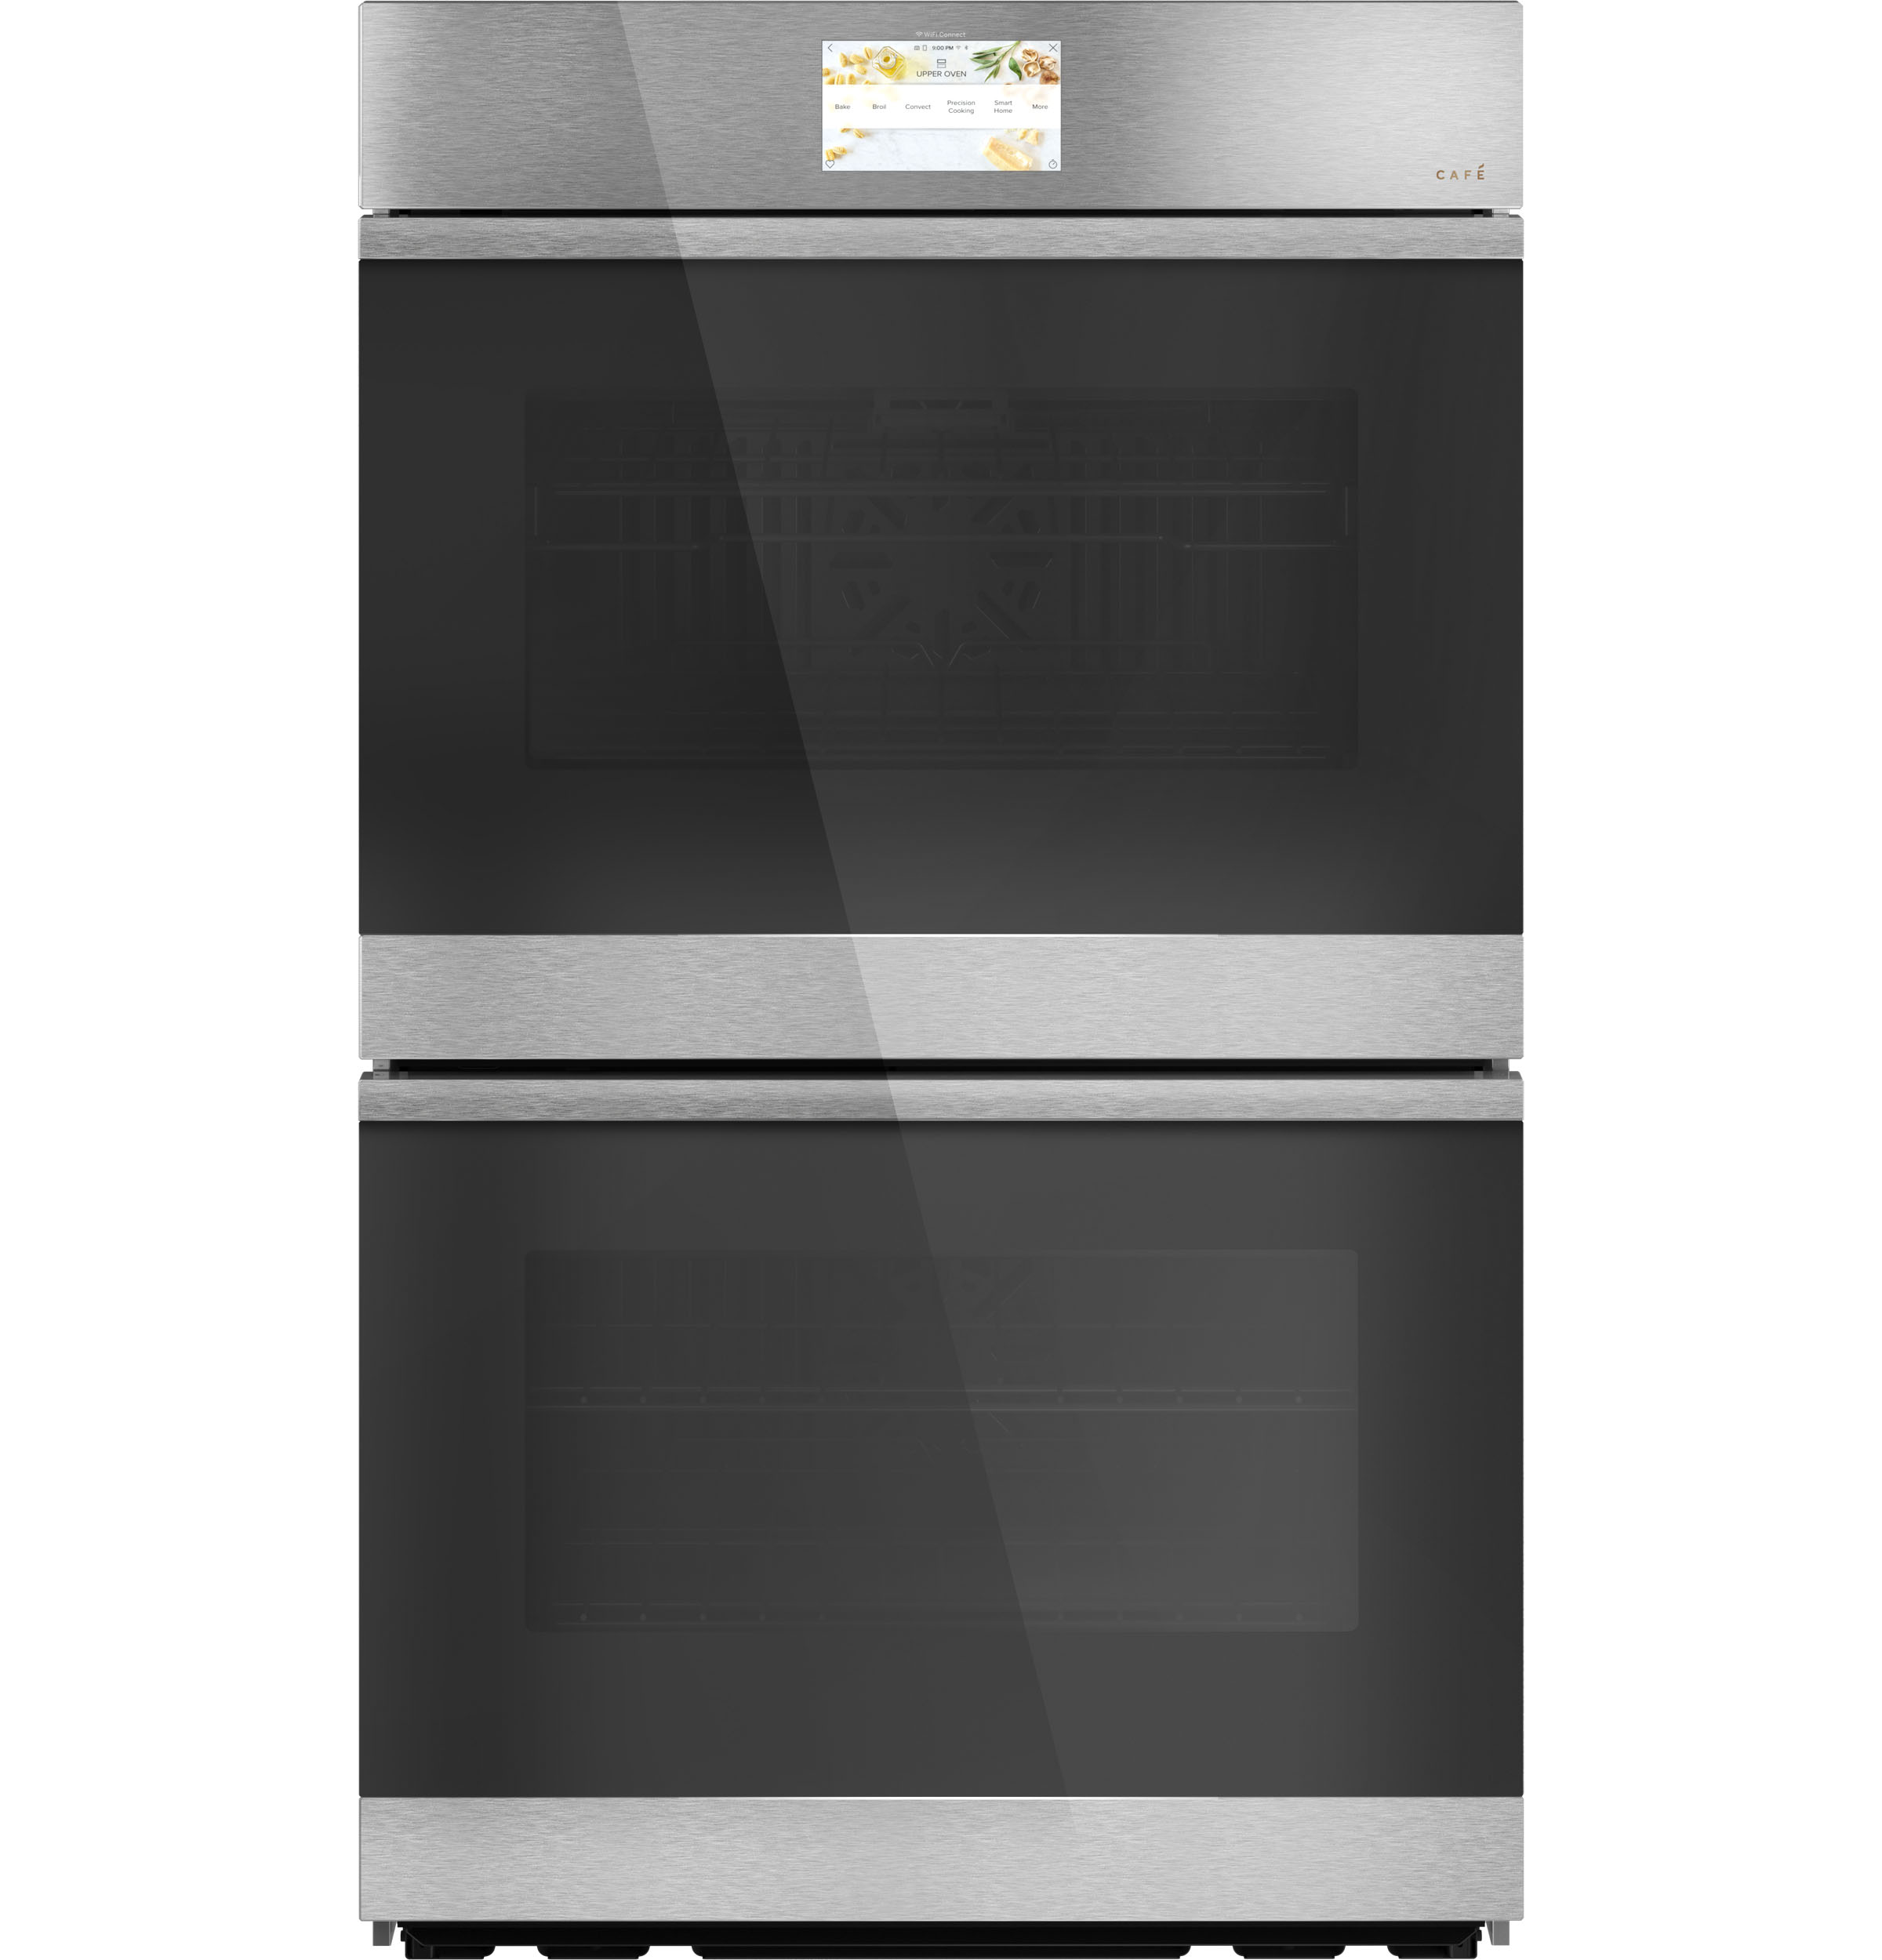 CAFE Smart Double Wall Oven